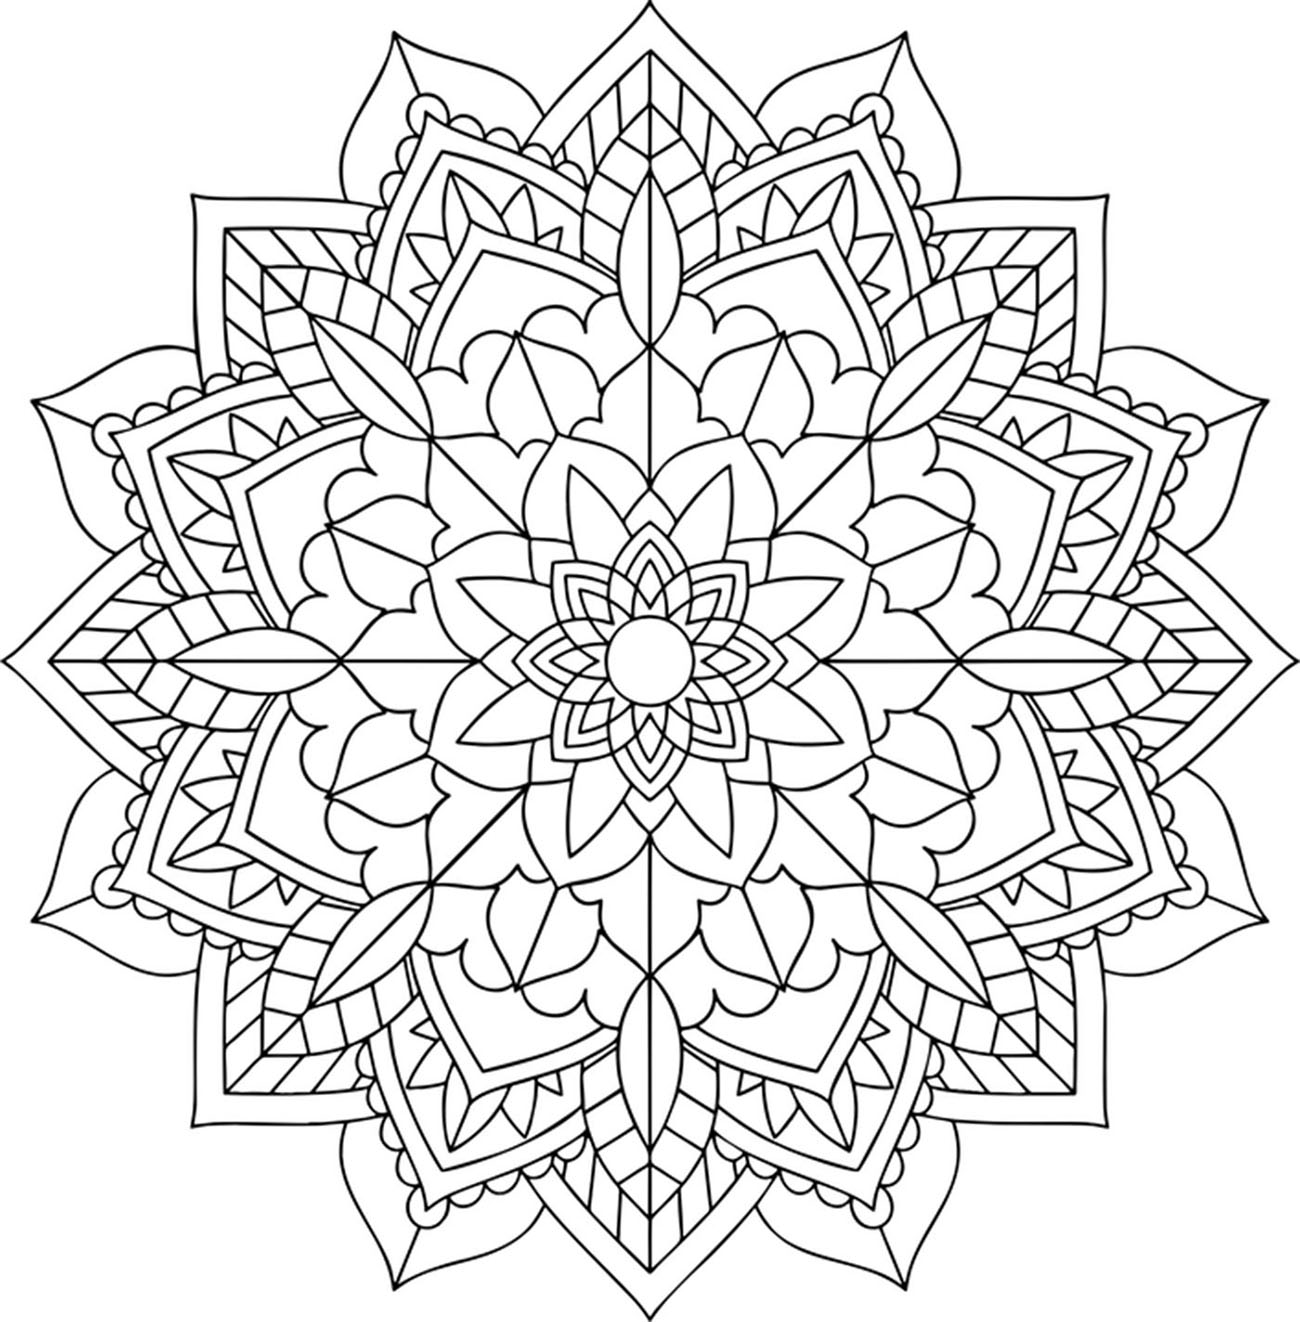 Prepare your most beautiful colors to give life to this beautiful and exclusive coloring page, dedicated to lovers of Mandalas and Nature !